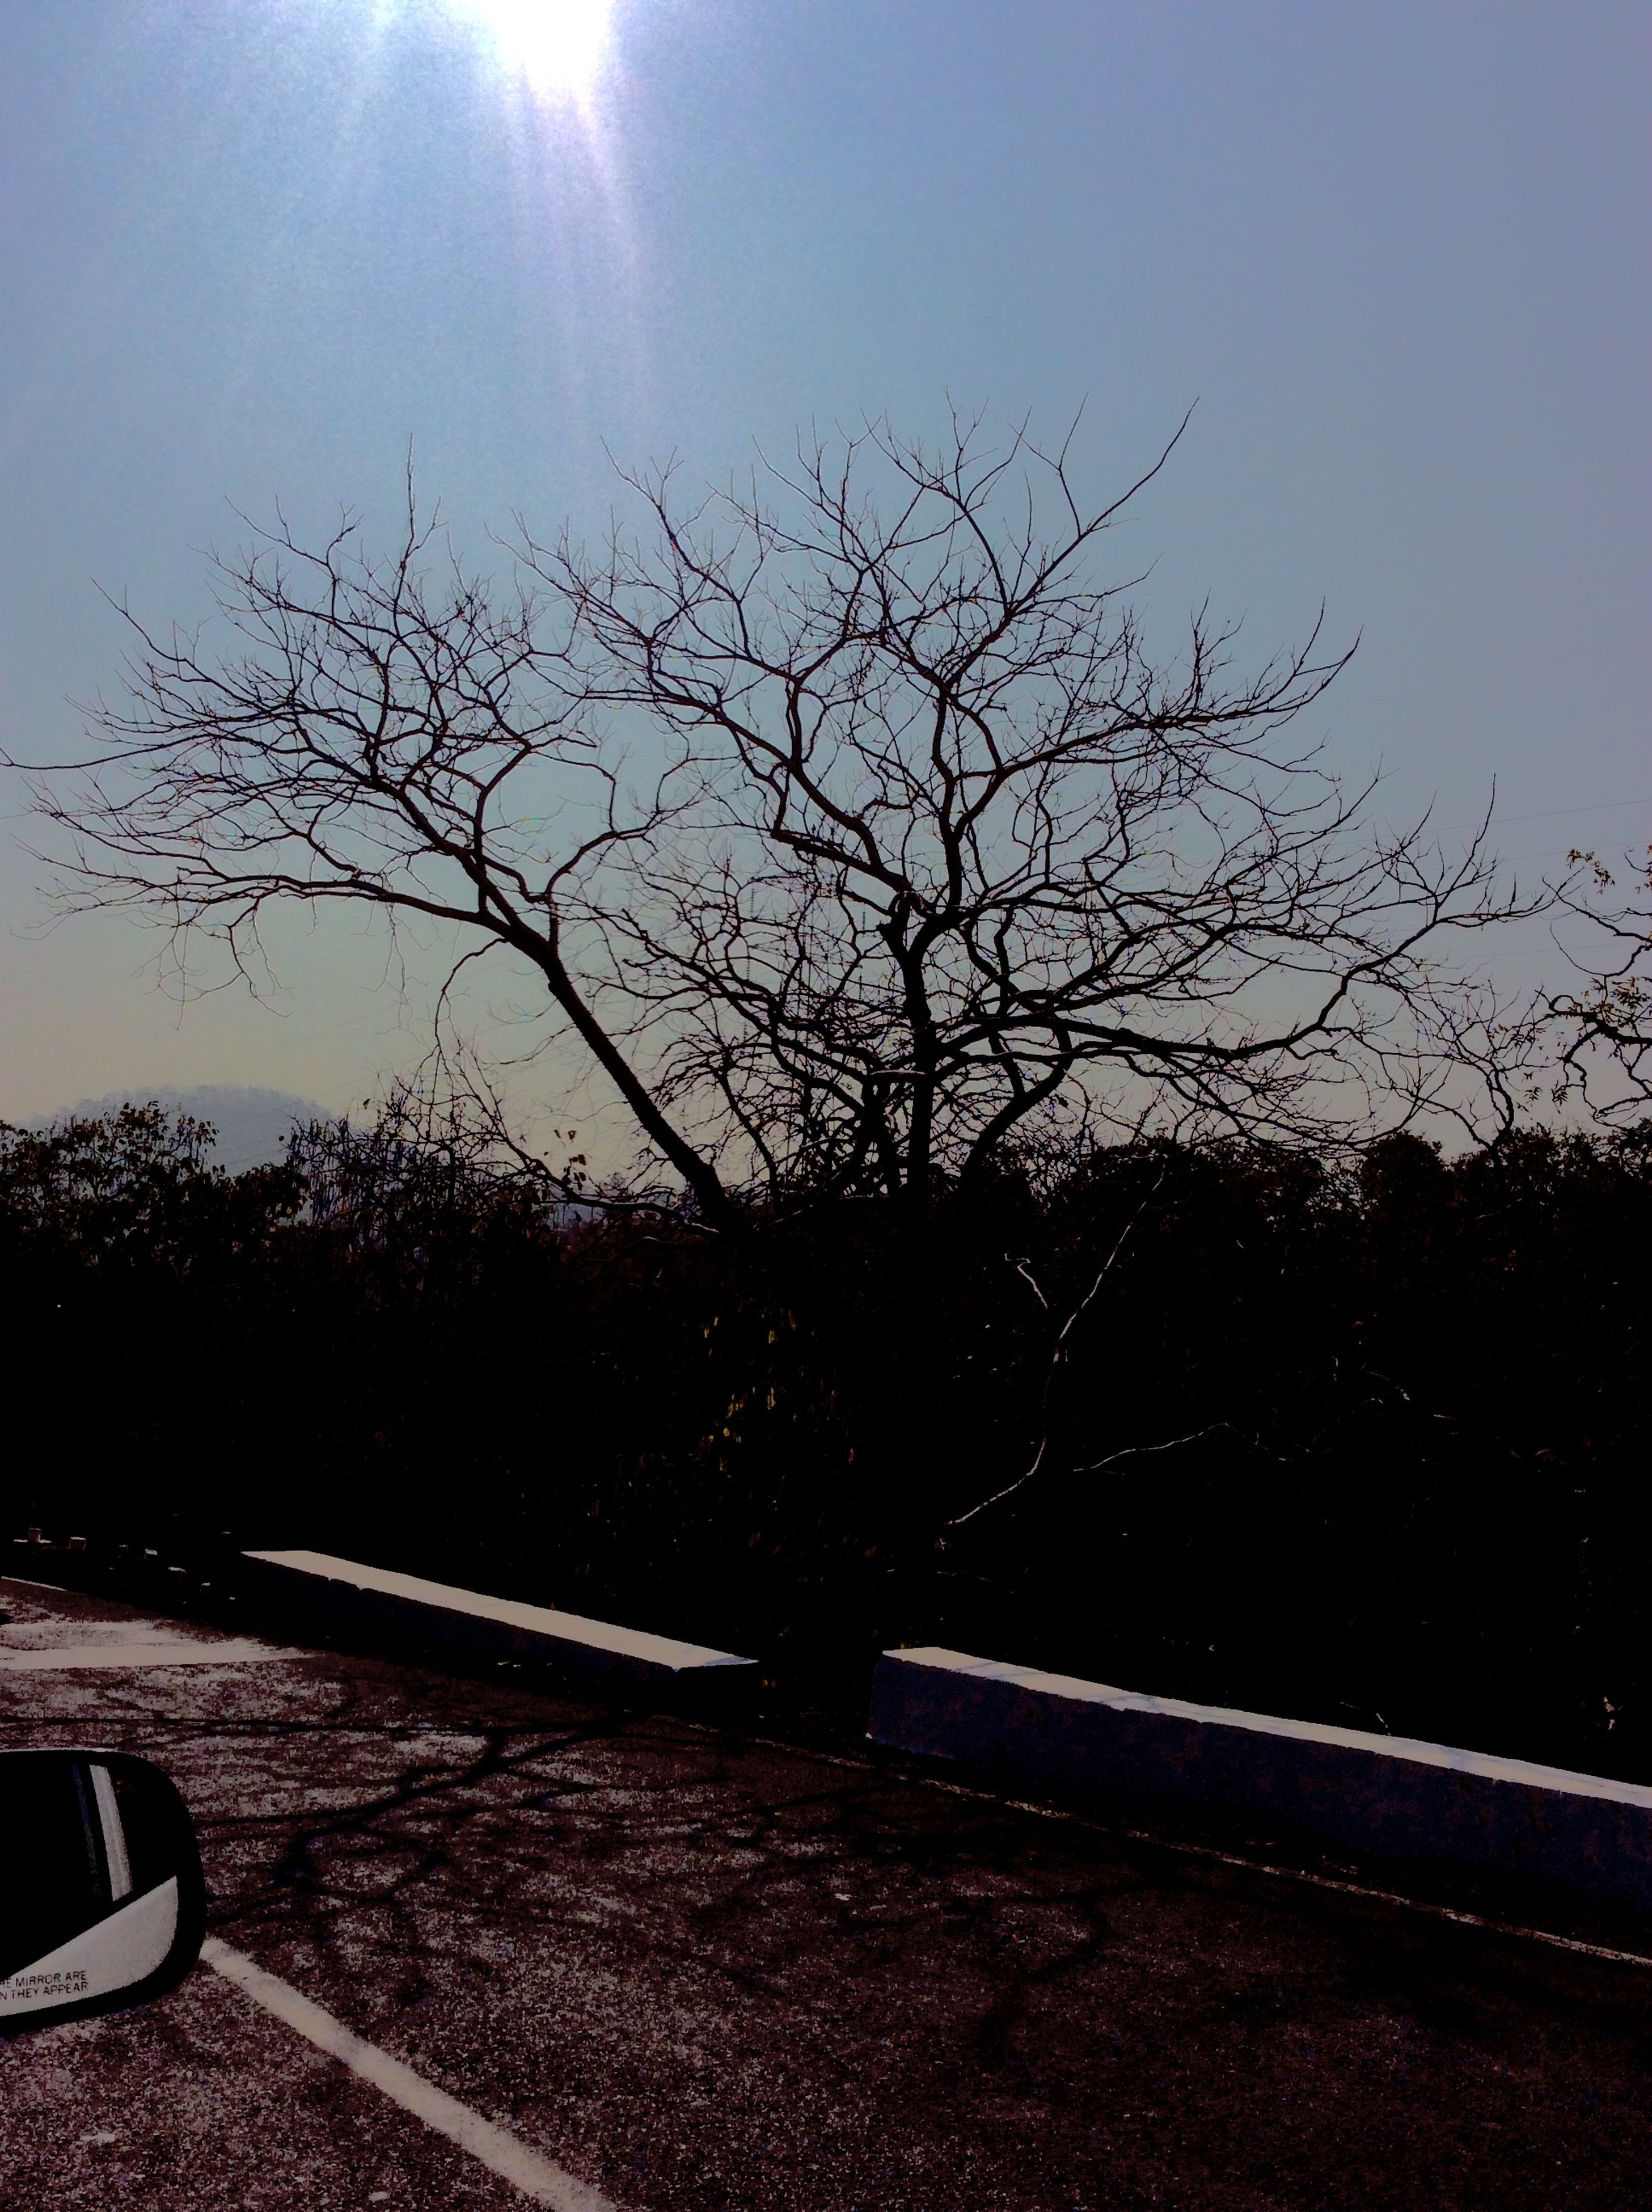 bare tree, tree, transportation, road, sun, clear sky, sunlight, silhouette, sky, tranquility, nature, branch, lens flare, street, sunbeam, tranquil scene, car, no people, outdoors, landscape